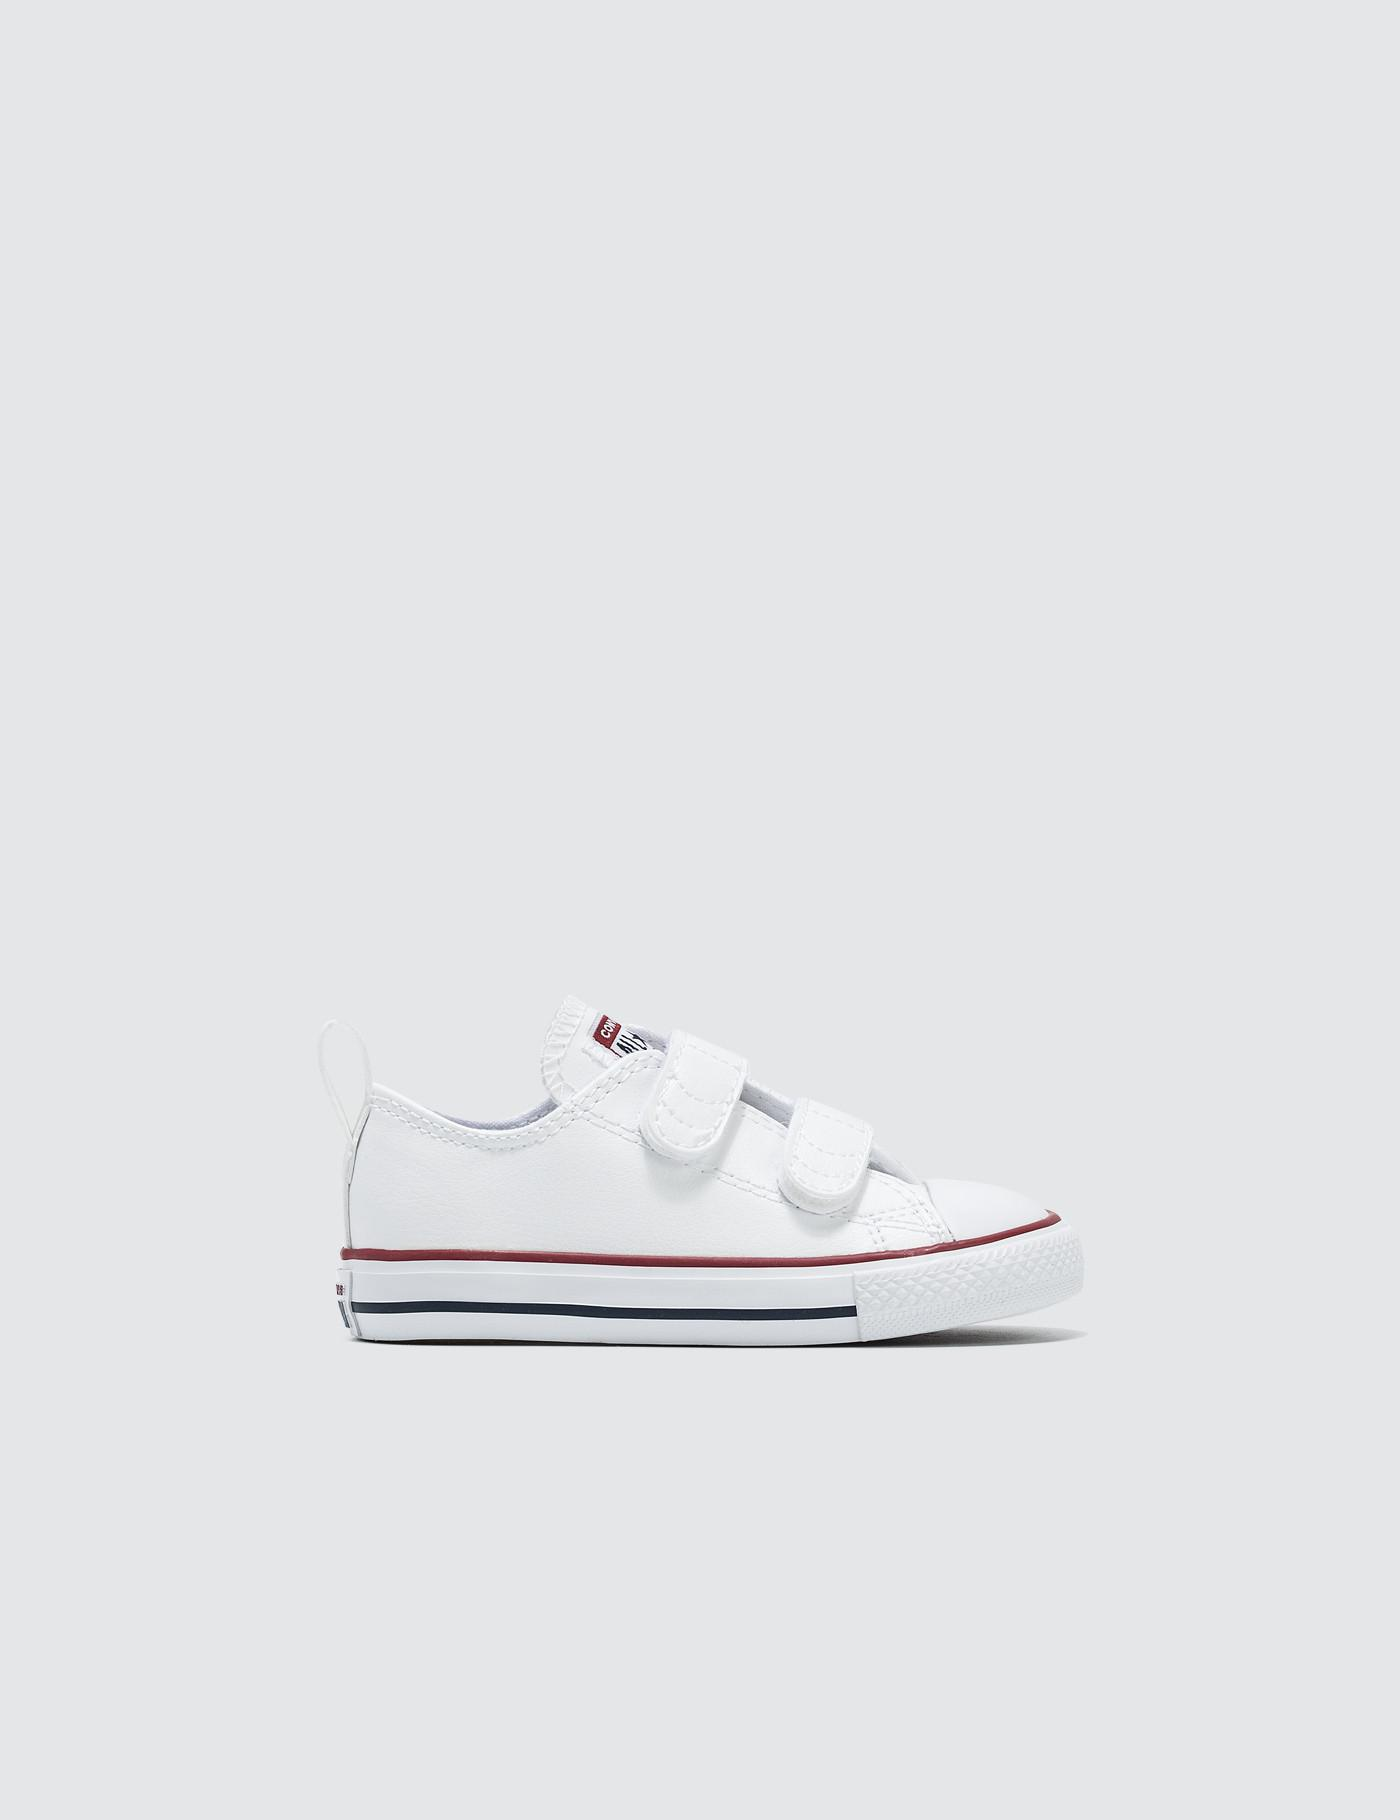 5b3d55cd576a Lyst - Converse Chuck Taylor All Star 2v in White